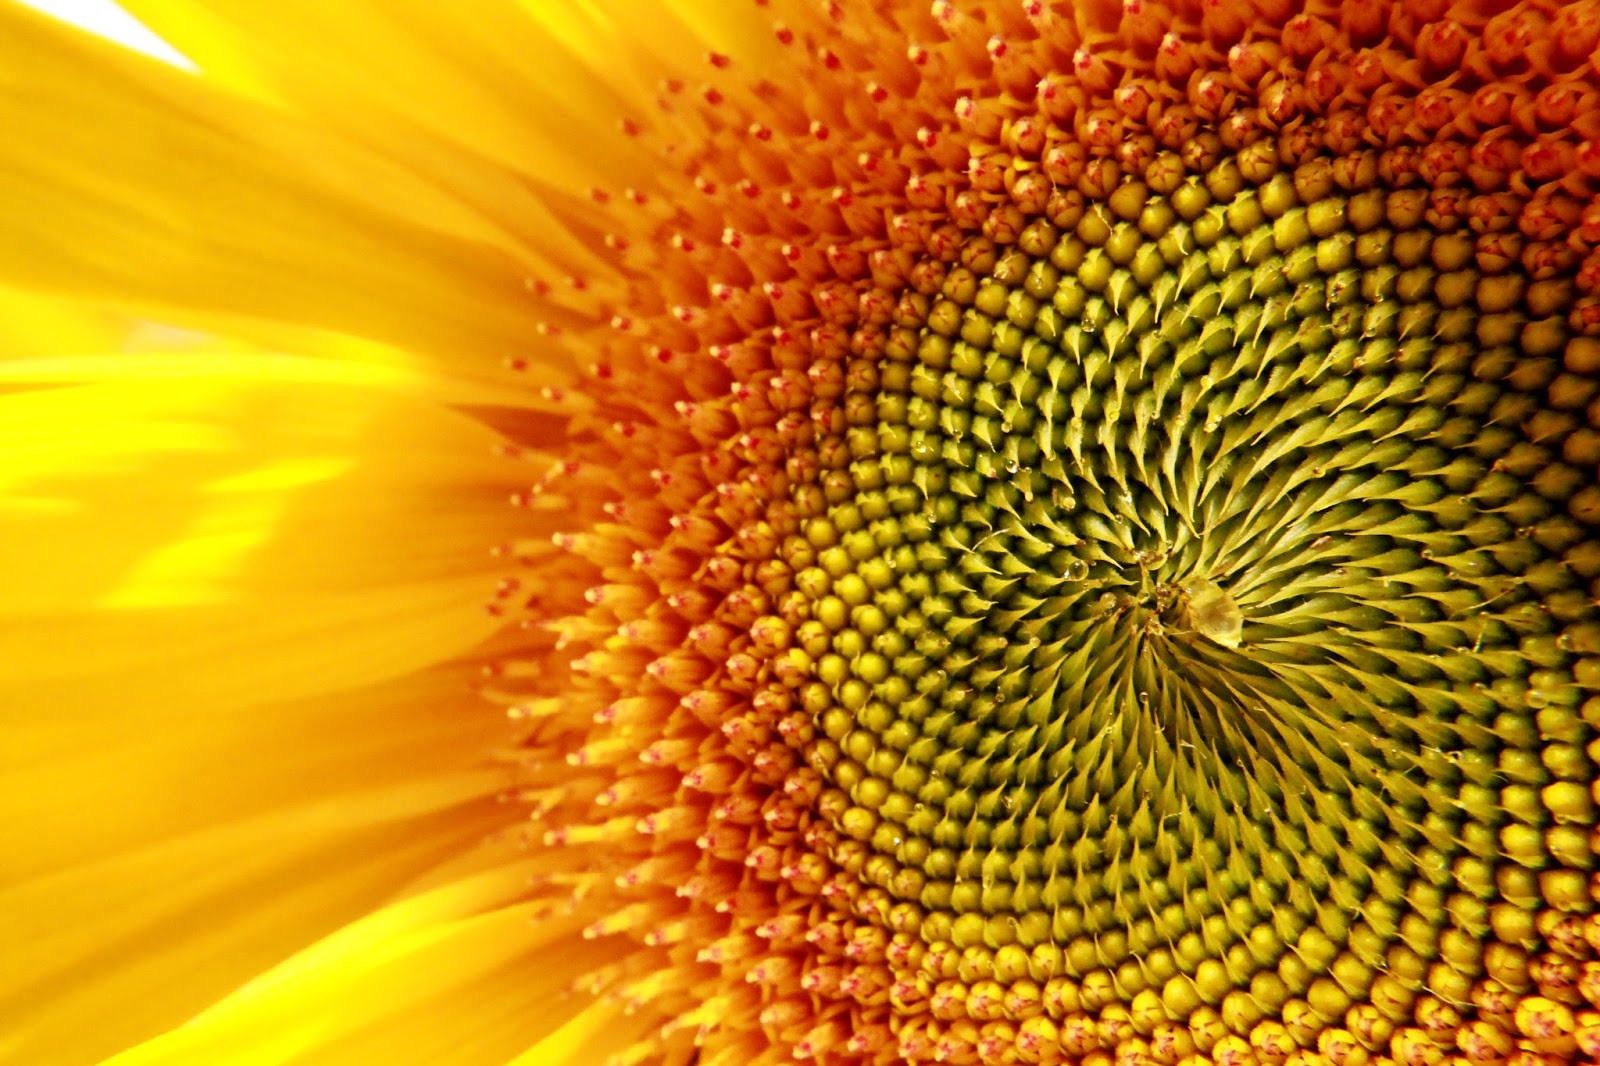 sturch photography sunflowers fibonacci and the zen of